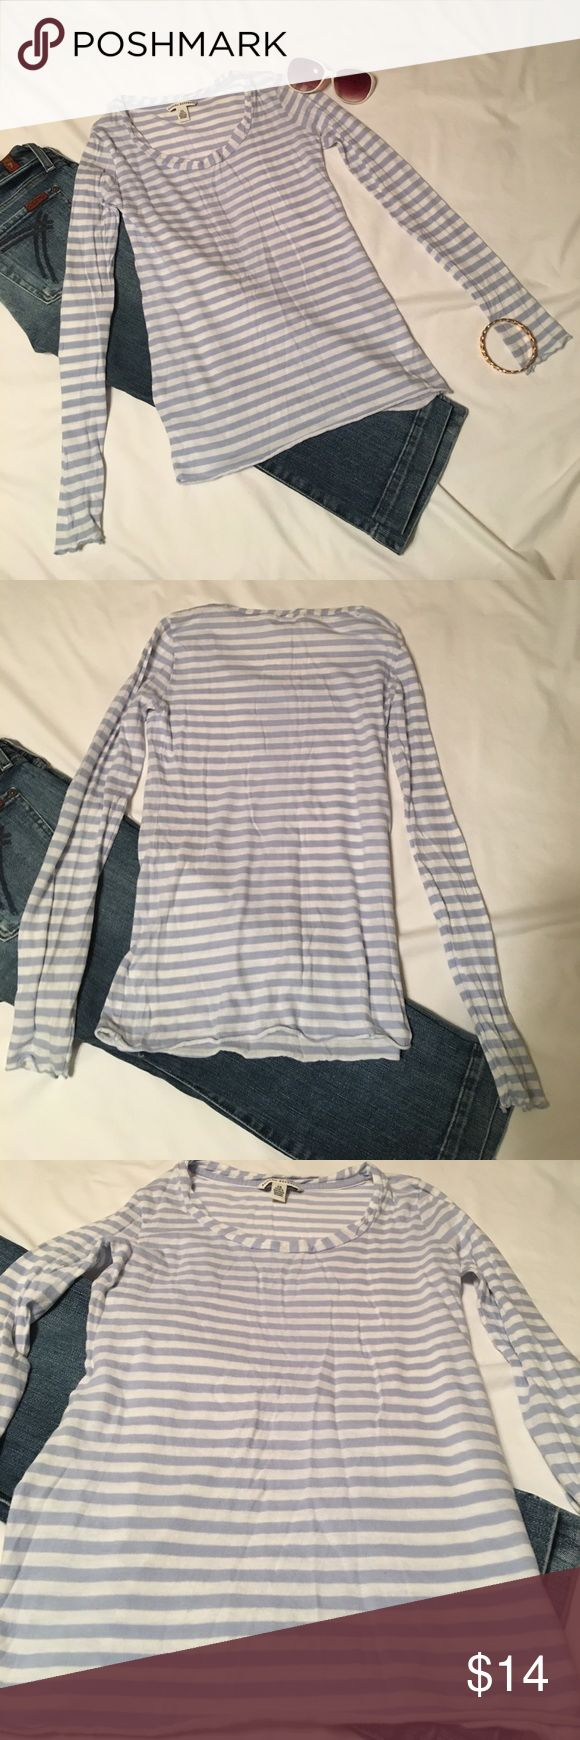 Banana Republic Soft T-Shirt Size XS Banana Republic Very Soft Wash T-Shirt. Baby blue grey and white striped long sleeve T-Shirt. Perfect for summer nights! Great paired with Jeans or White Skirt or White Jeans! Banana Republic Tops Tees - Long Sleeve